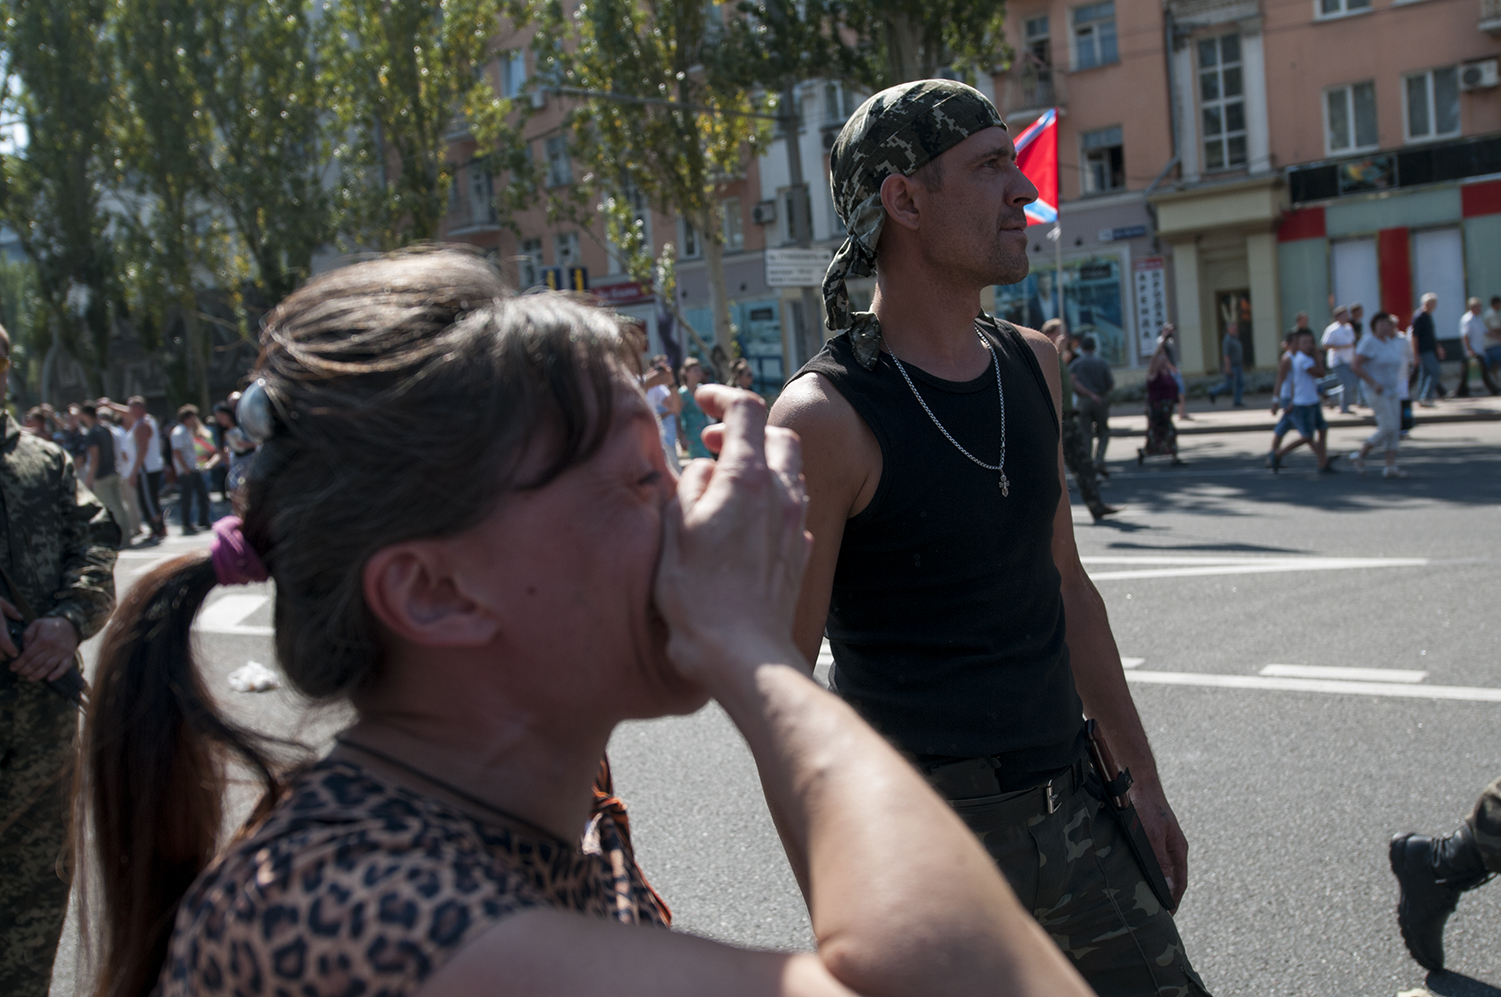 A separatist carrying a smirk on his face as the POW walk passed him and a woman cries while insulting them